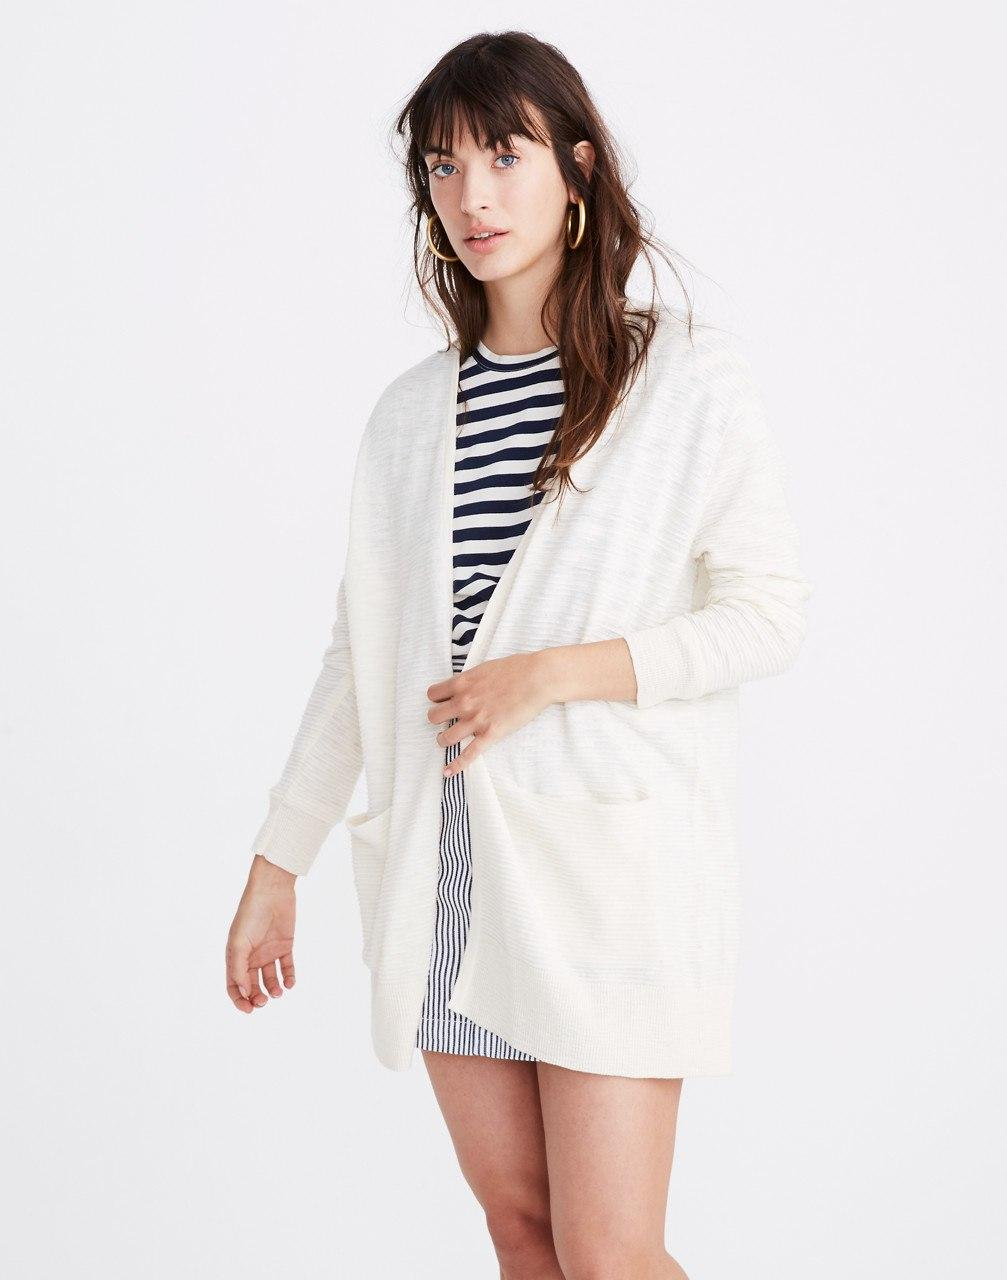 ef2adad77431 Lyst - Madewell Summer Ryder Cardigan Sweater In Stripe in White